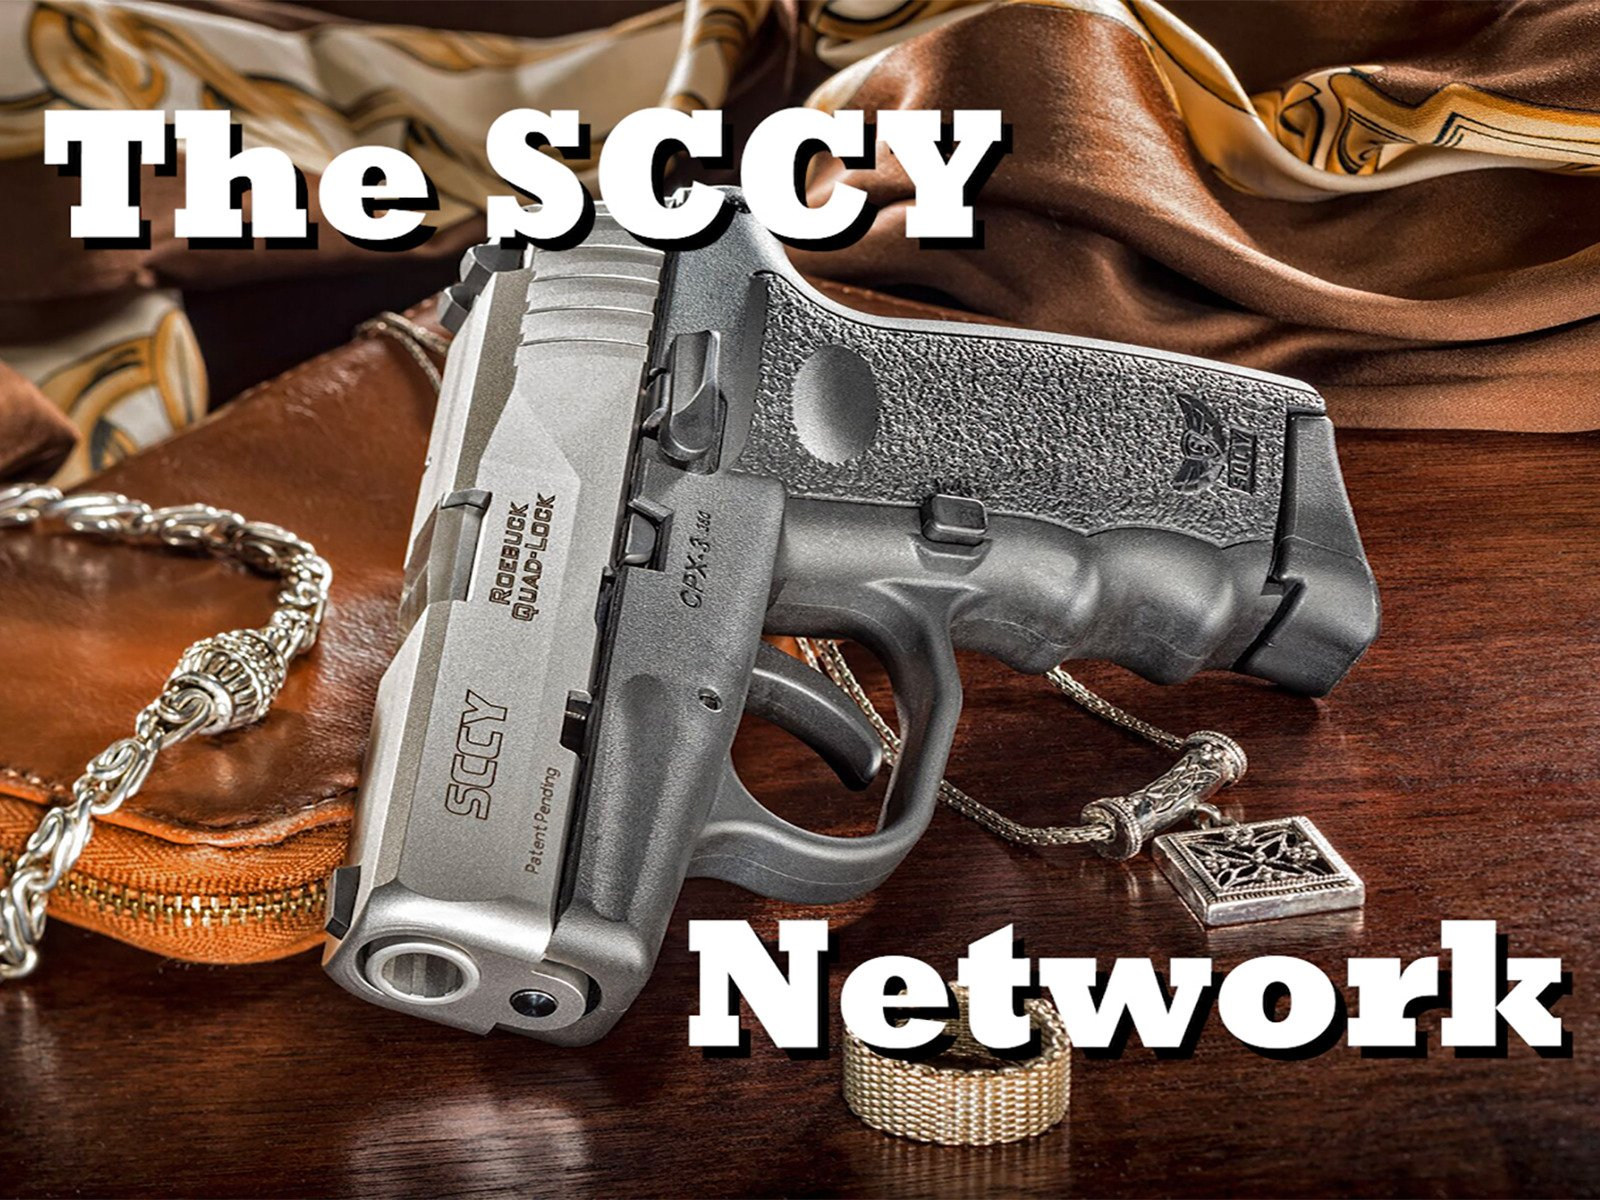 The SCCY Network - Season 2